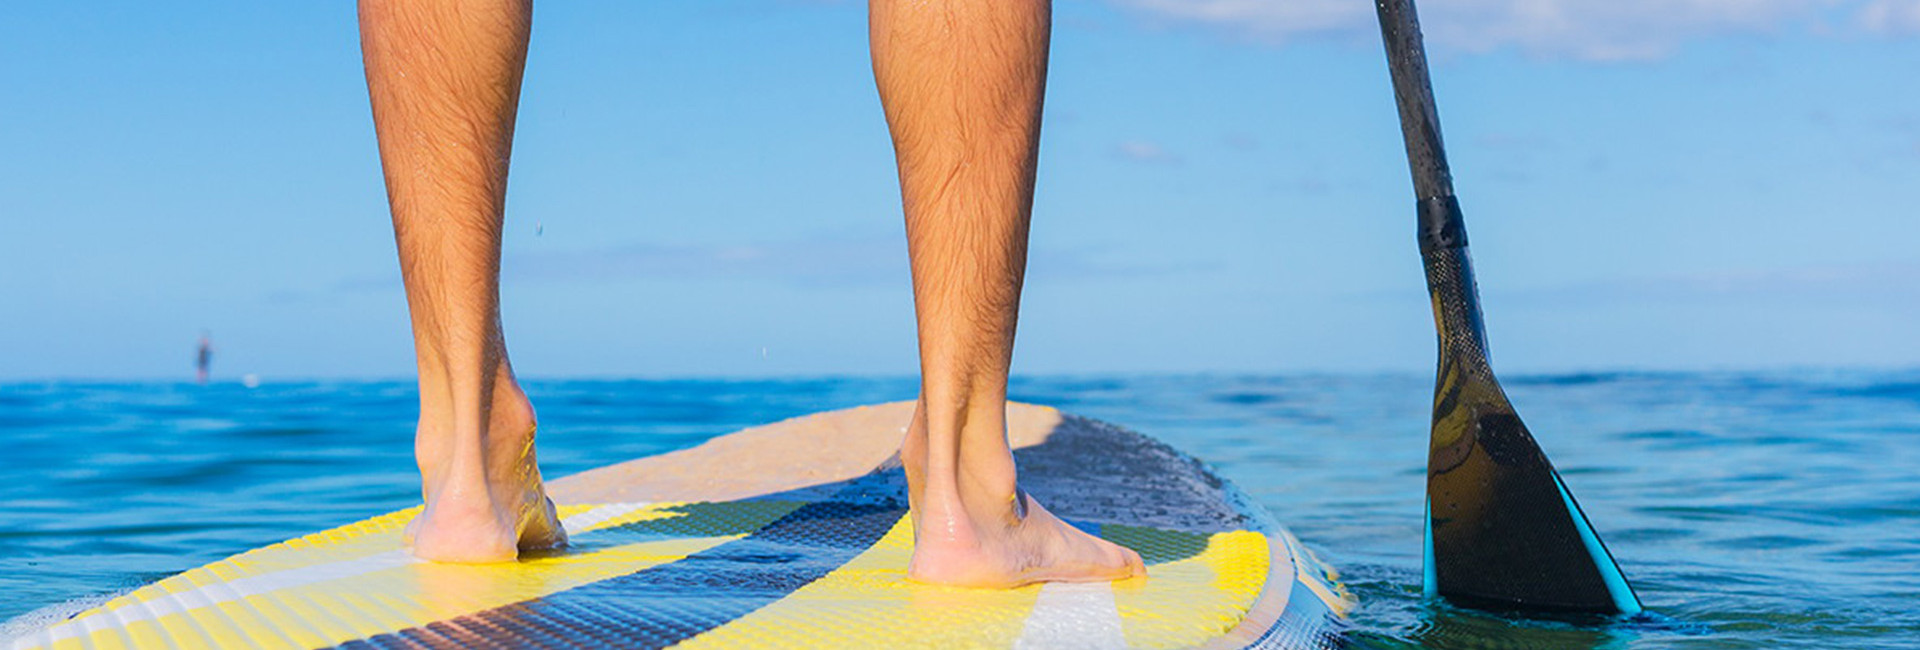 Dude's feet on a yellow paddleboard